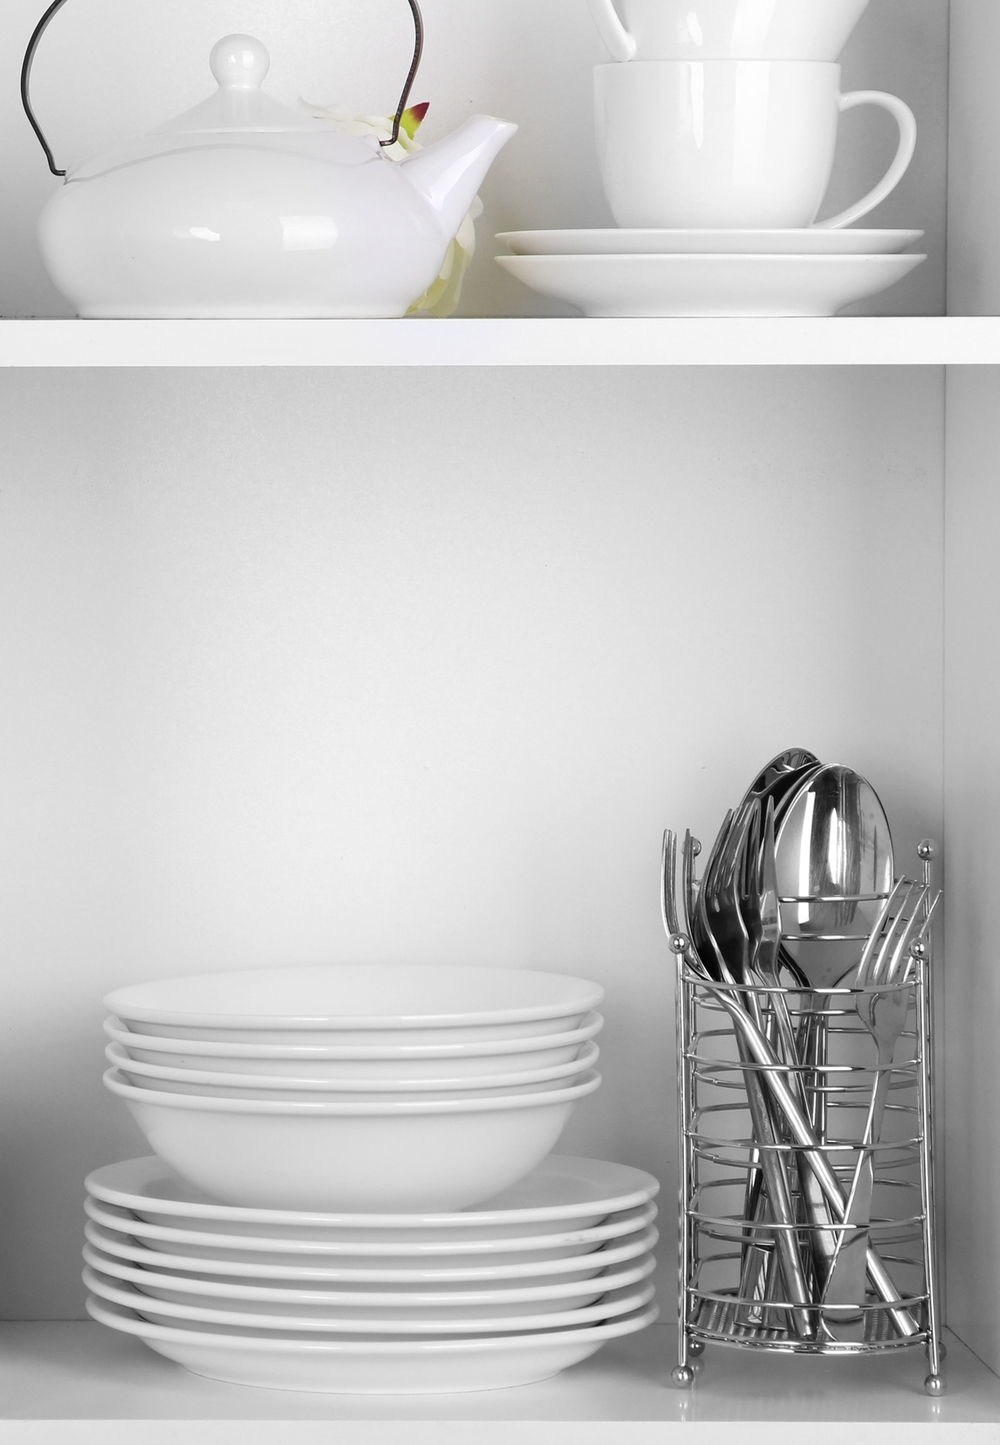 clean-interior-decor-porcelain-dishes-crystal-flatware-on-white-shelves-66623576.jpg